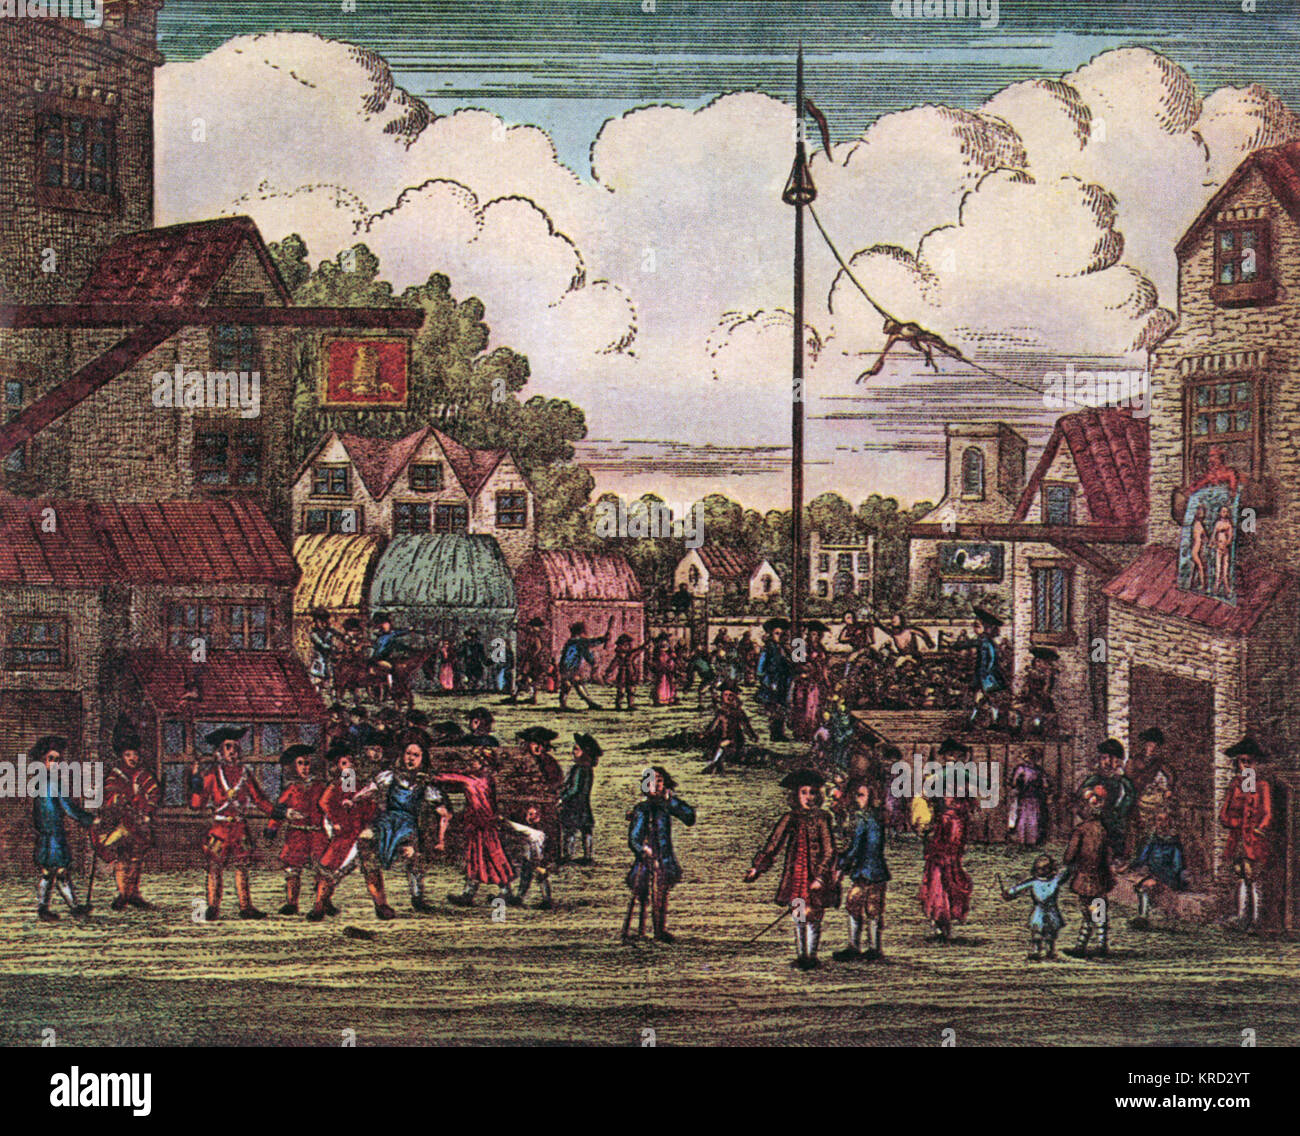 A decidedly rural looking Mayfair, now the most prestigious and expensive area of London, pictured in 1716.     - Stock Image